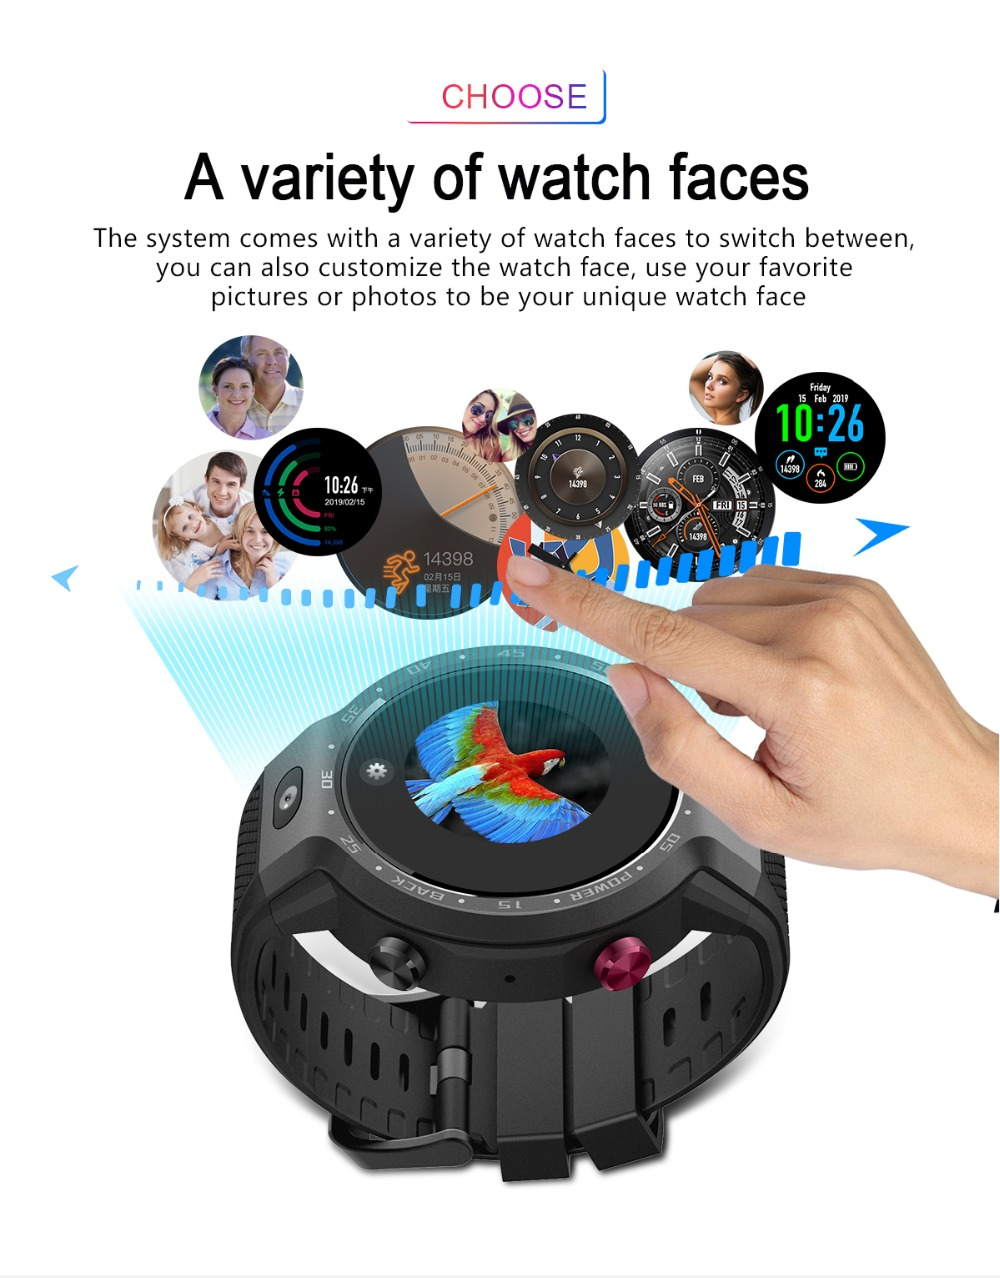 TORNTISC Z30 Dual Systems 4G Smart Watch phone Android 7.1 5MP Front Camera 600Mah Battery Support GPS WIFI Heart Rate Smartwatch PK LEM9 Presale (14)